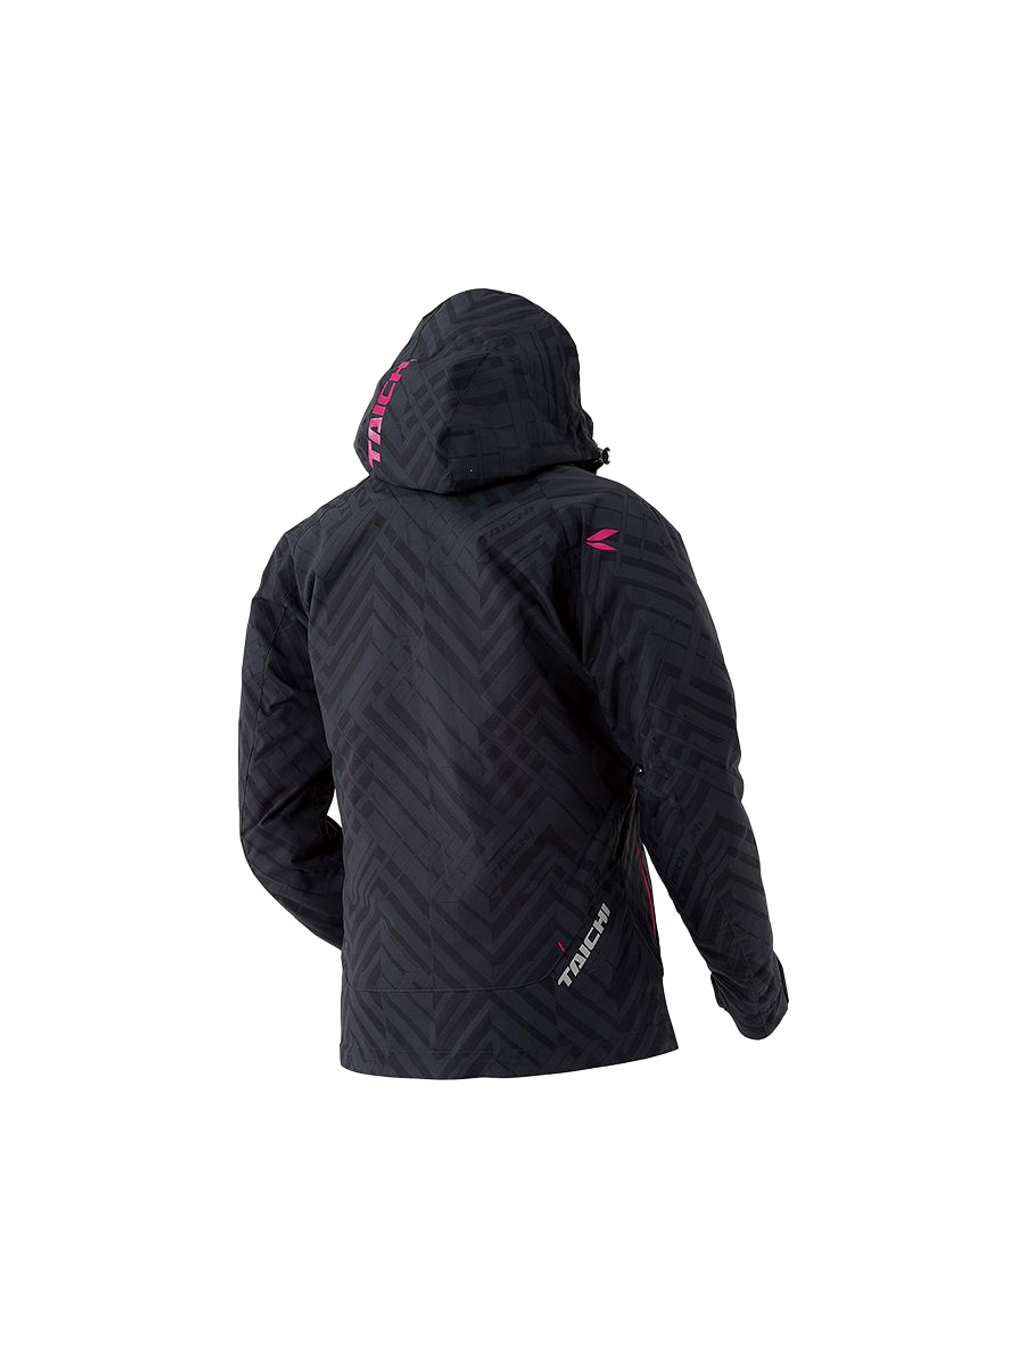 77 RS TAICHI RSJ321 WR PARKA FOREST PINK WOMAN (1).png